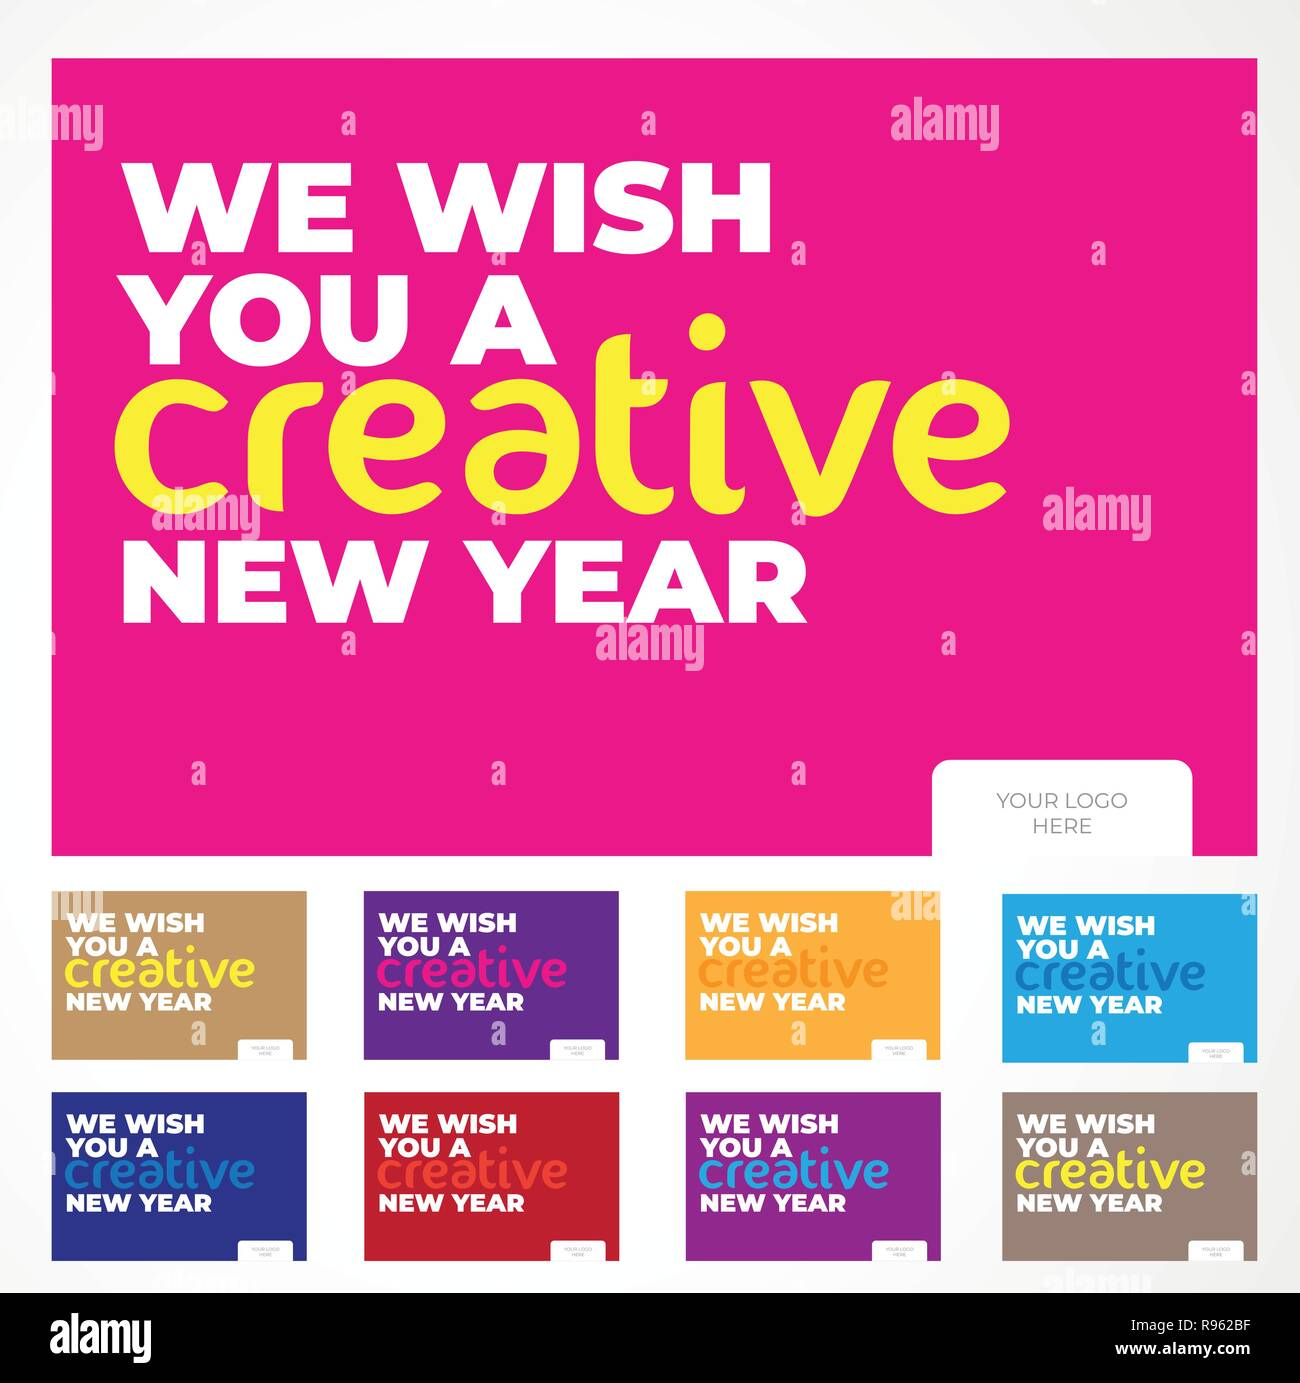 New year Wish Cards with beautiful gradients and a minimalistic touch. Just add the logo of your company and you're good to go ! Stock Vector